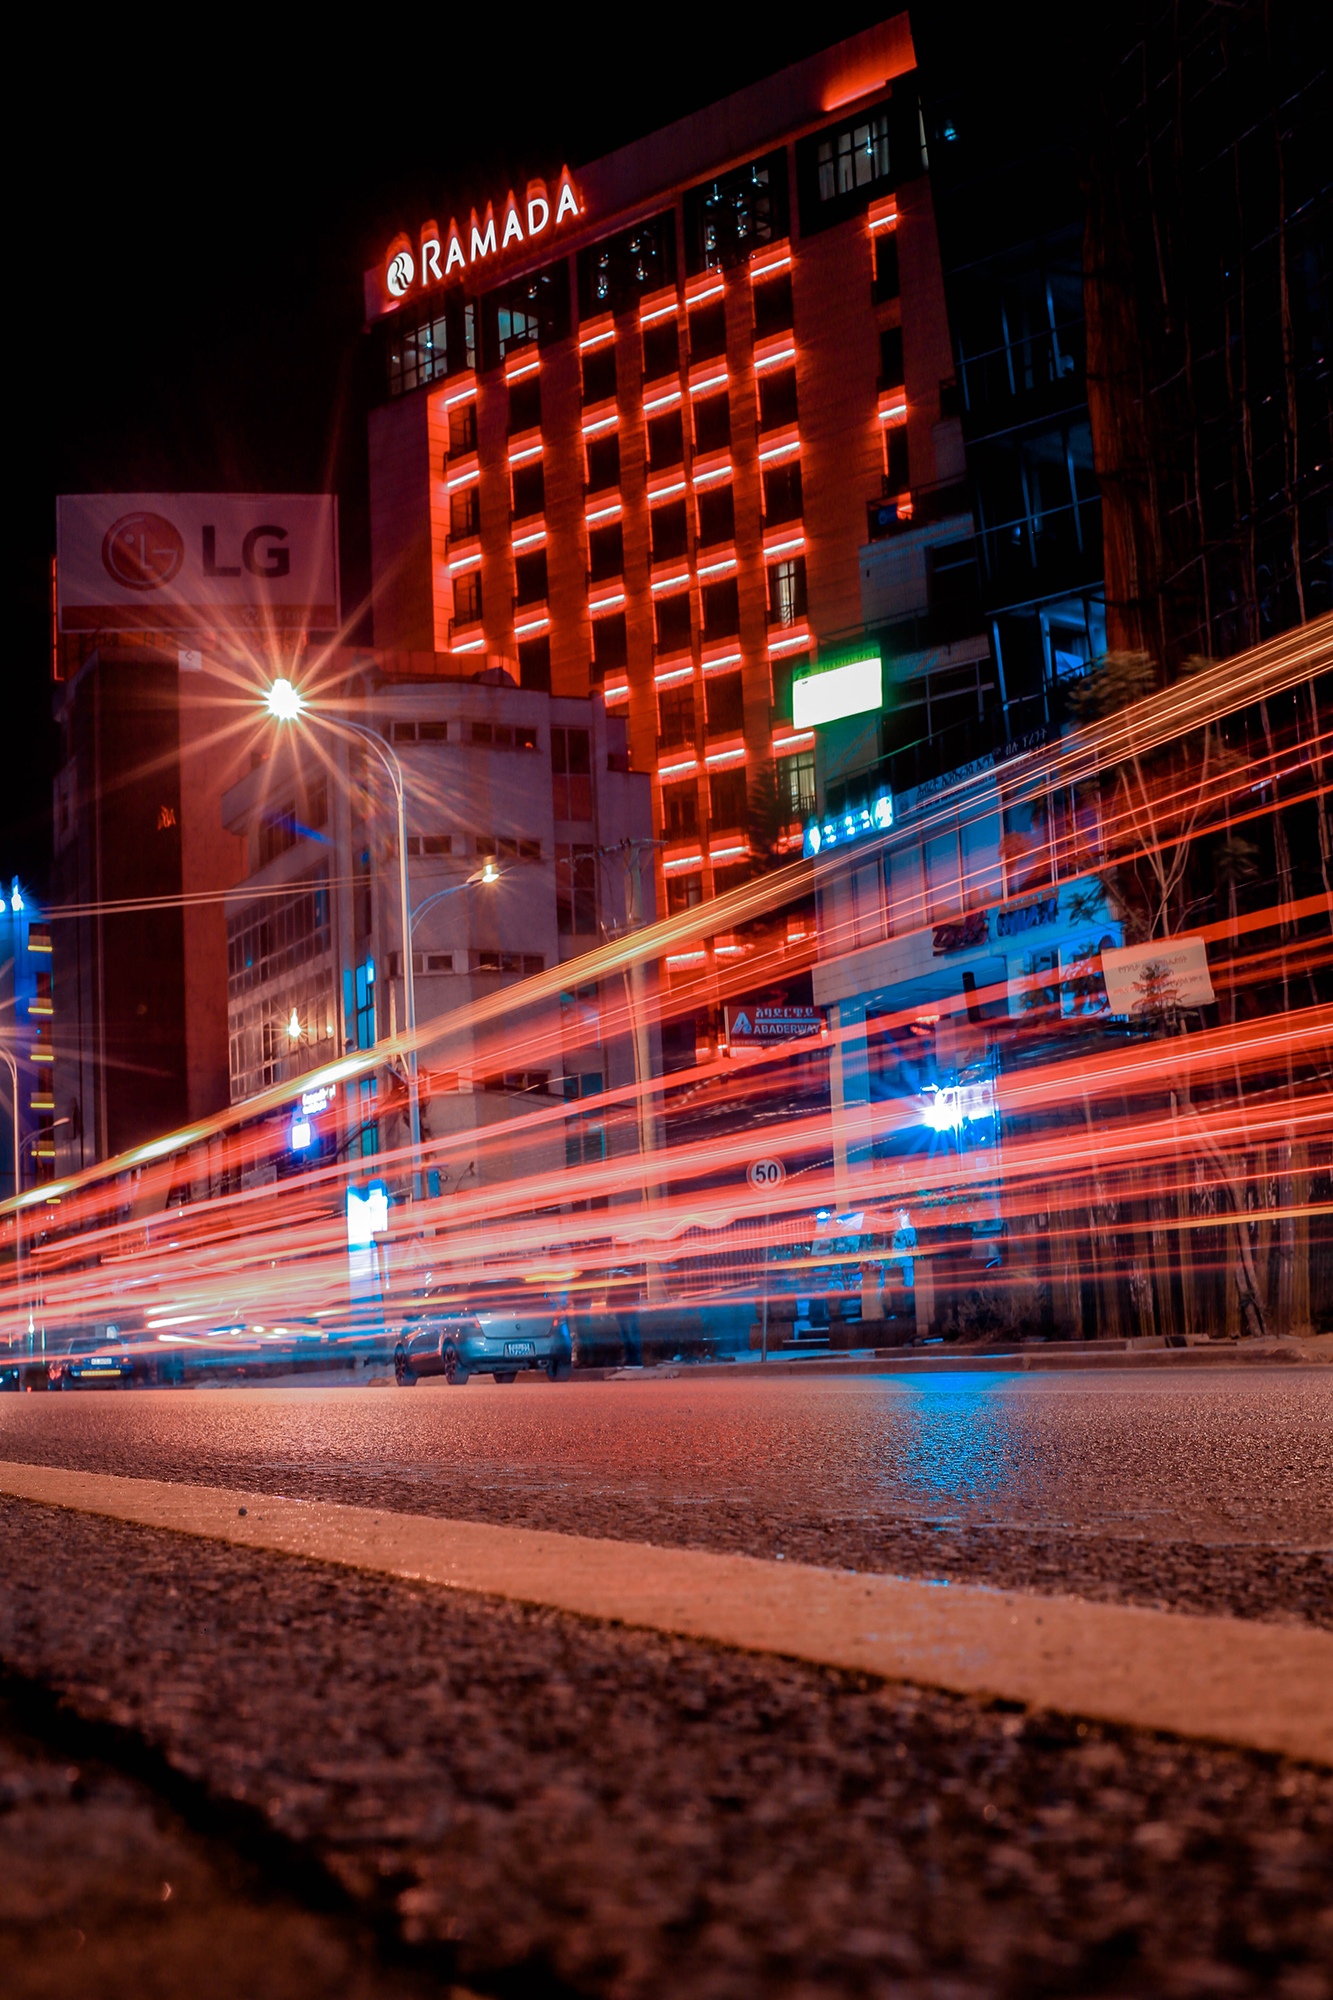 Addis Abeba, Ethiopia at night with red & blue lights created by a time lapse of passing cars.